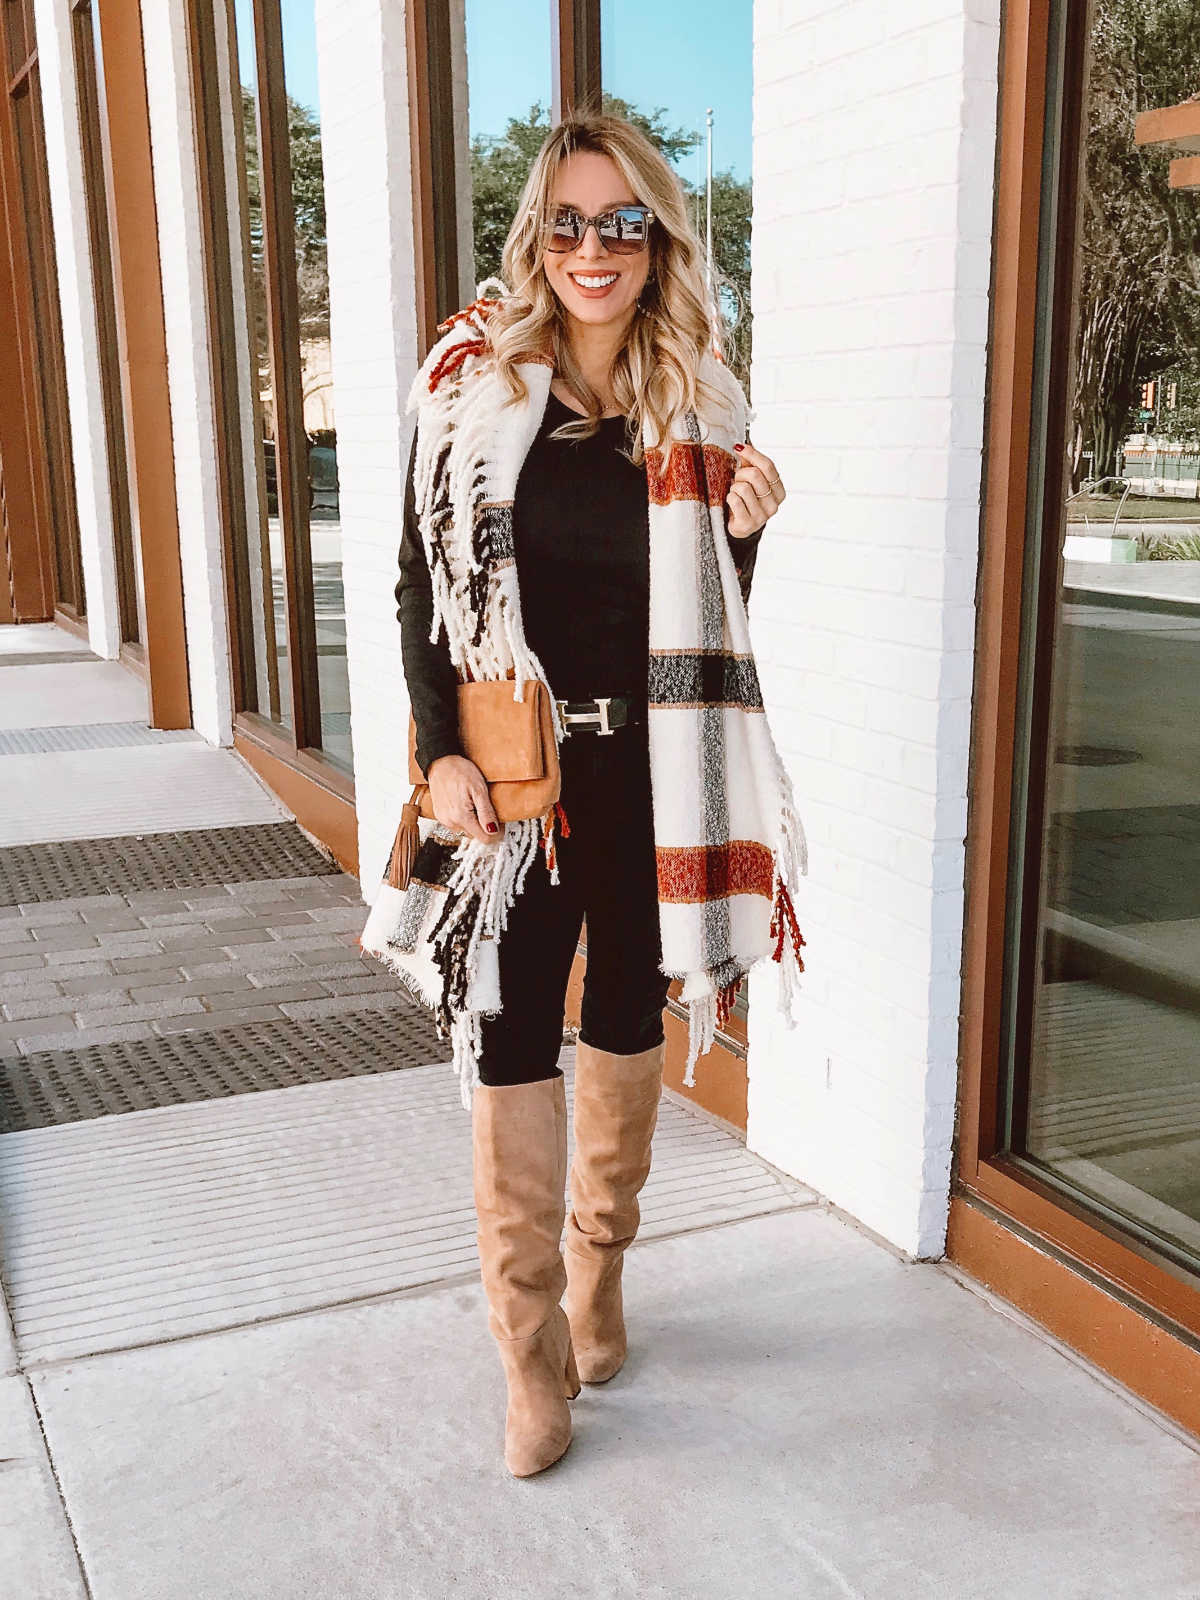 Winter outfit - fringe scarf black jeans and tall boots